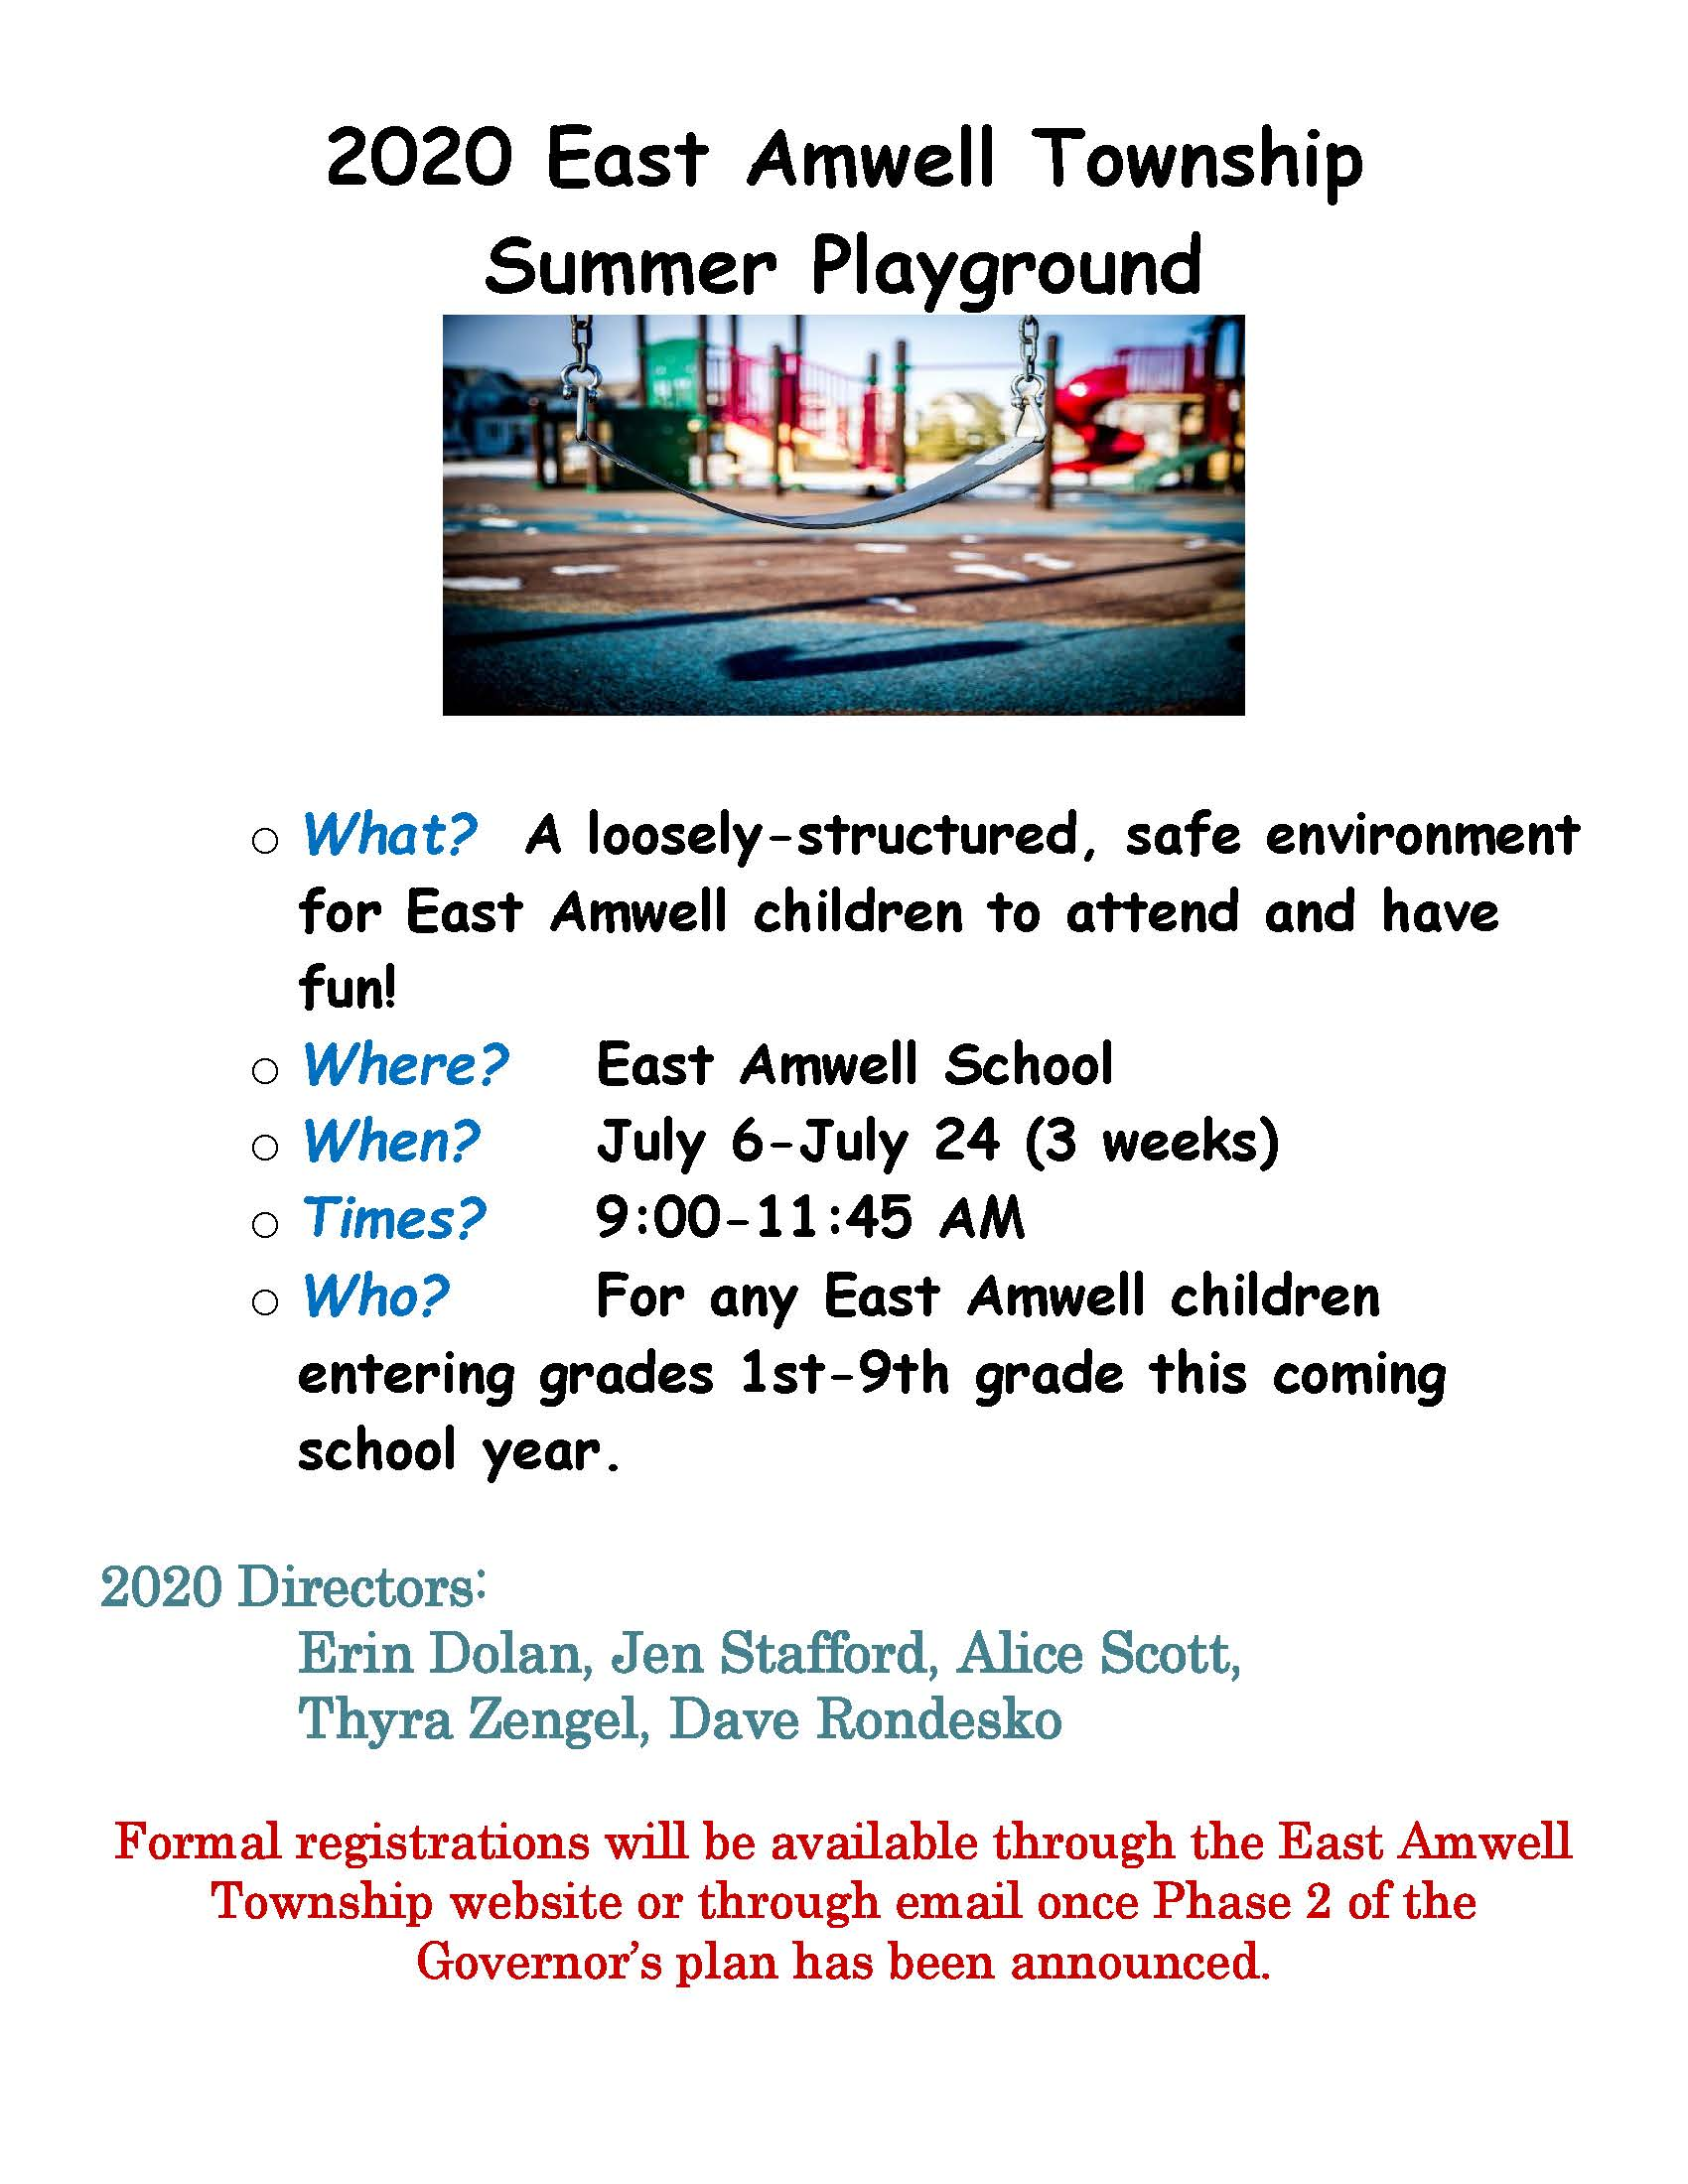 2020 East Amwell Township Summer Playground 2